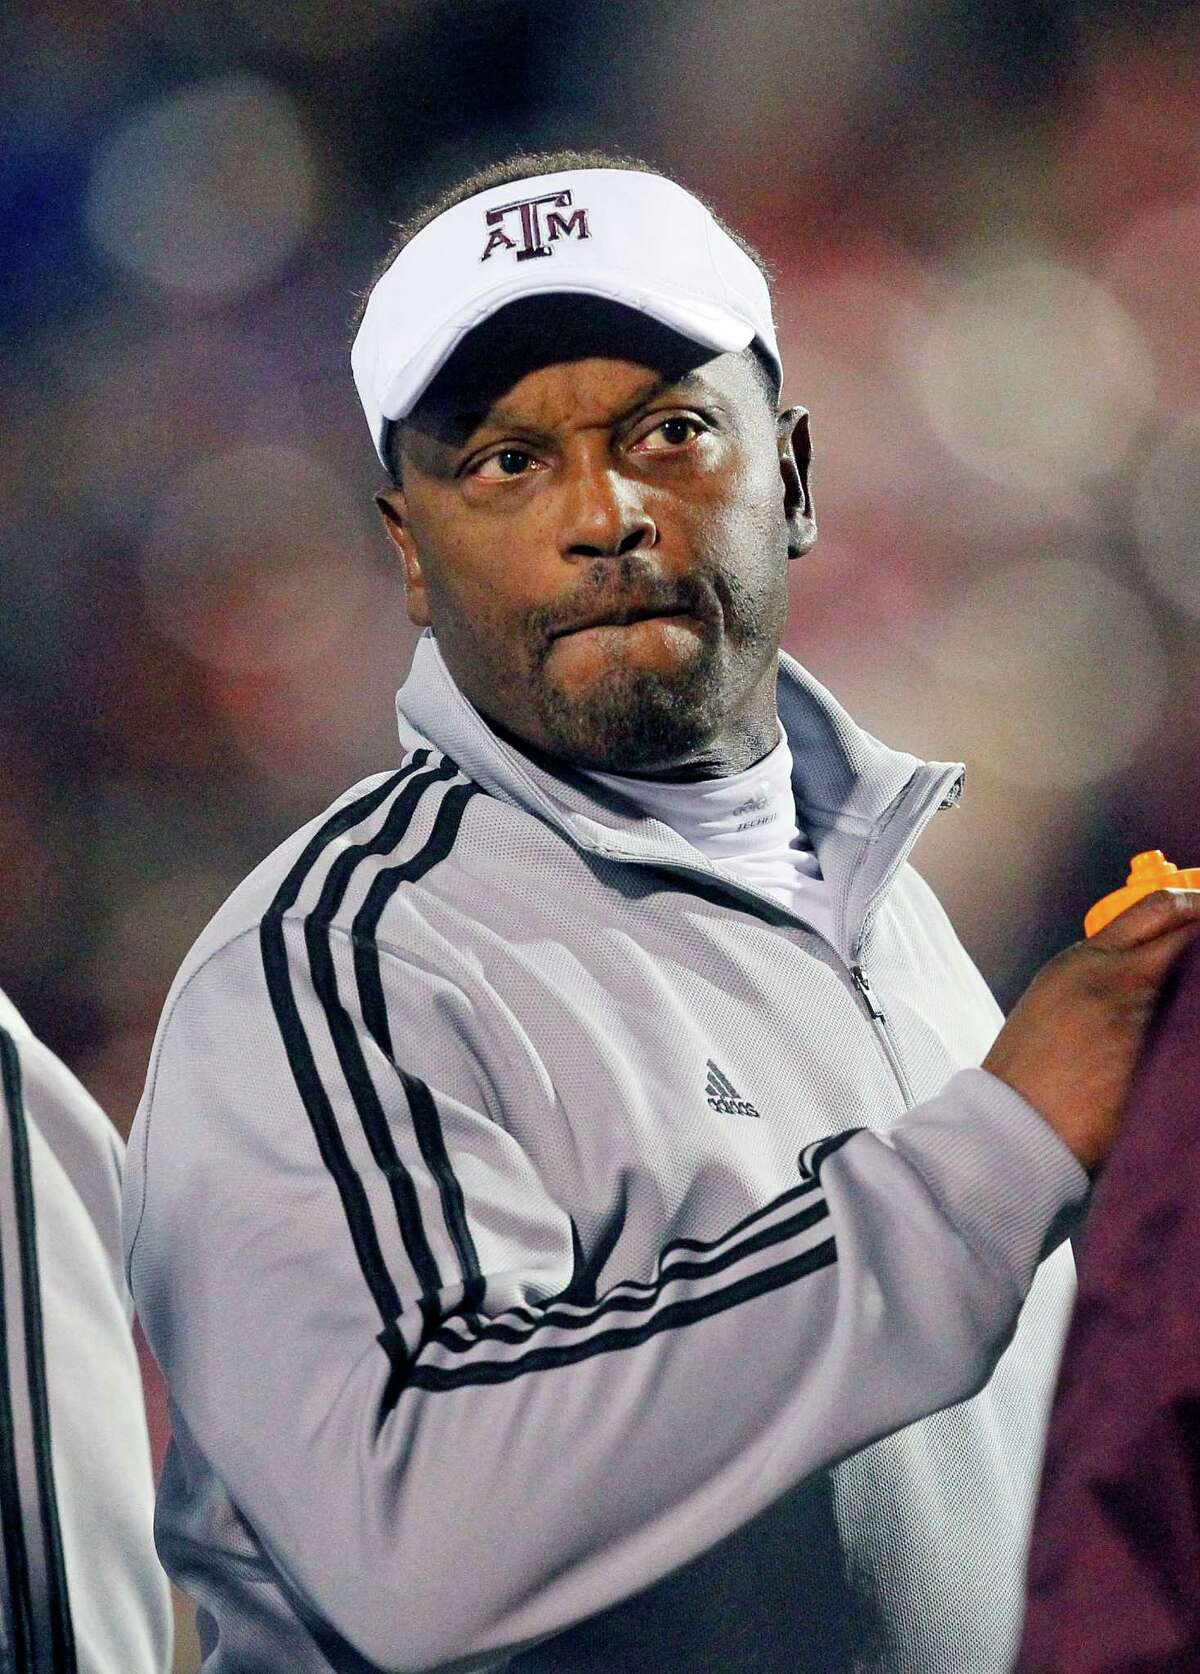 Texas A&M football coach Kevin Sumlin looks downfield in the third quarter of their NCAA college football game against Mississippi in Oxford, Miss., Saturday, Oct. 6, 2012. Texas A&M won 30-27. (AP Photo/Rogelio V. Solis)